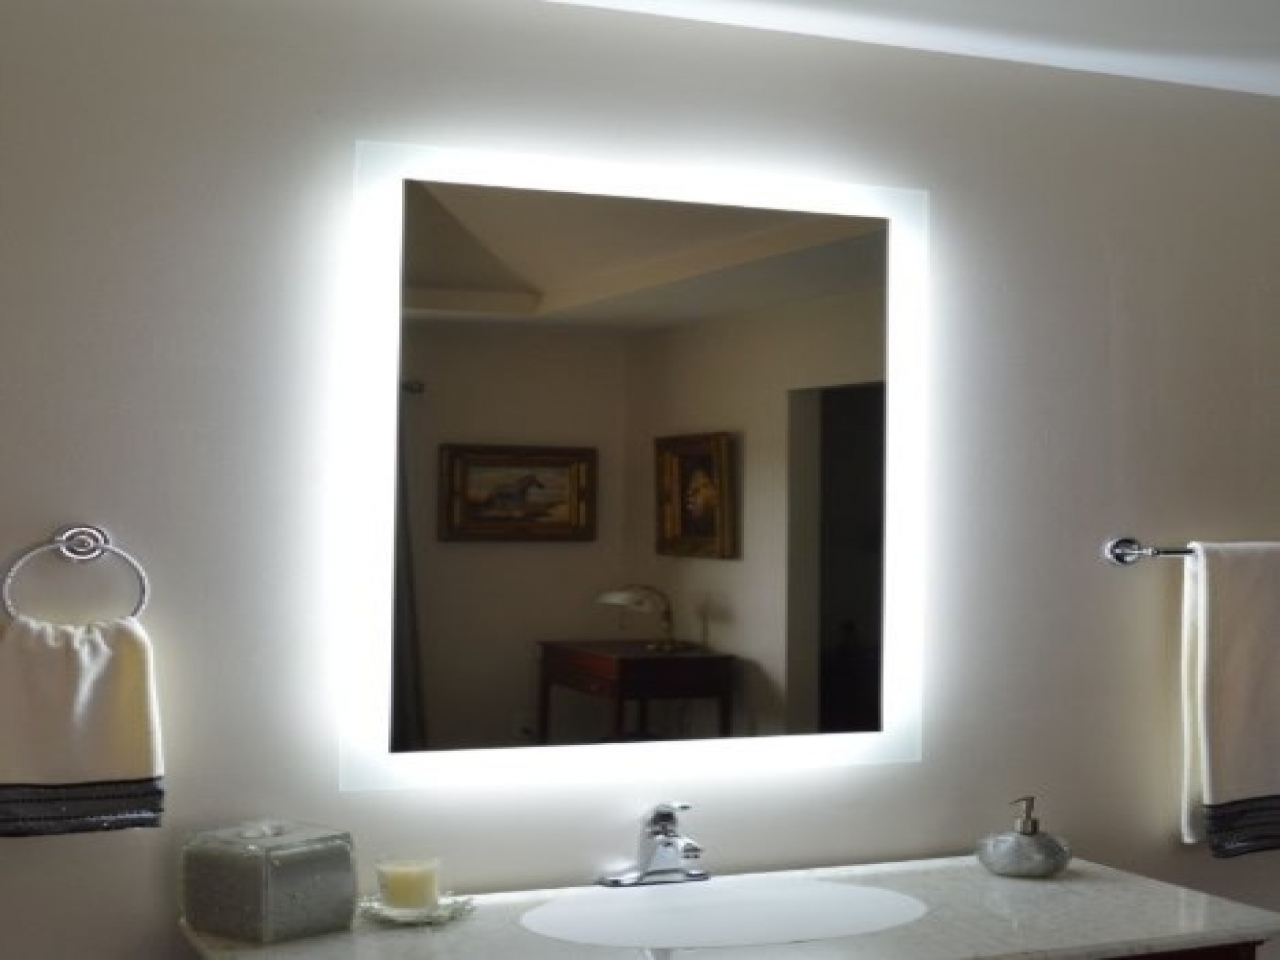 Picture of: Vanity Mirror With Led Lights Mounted